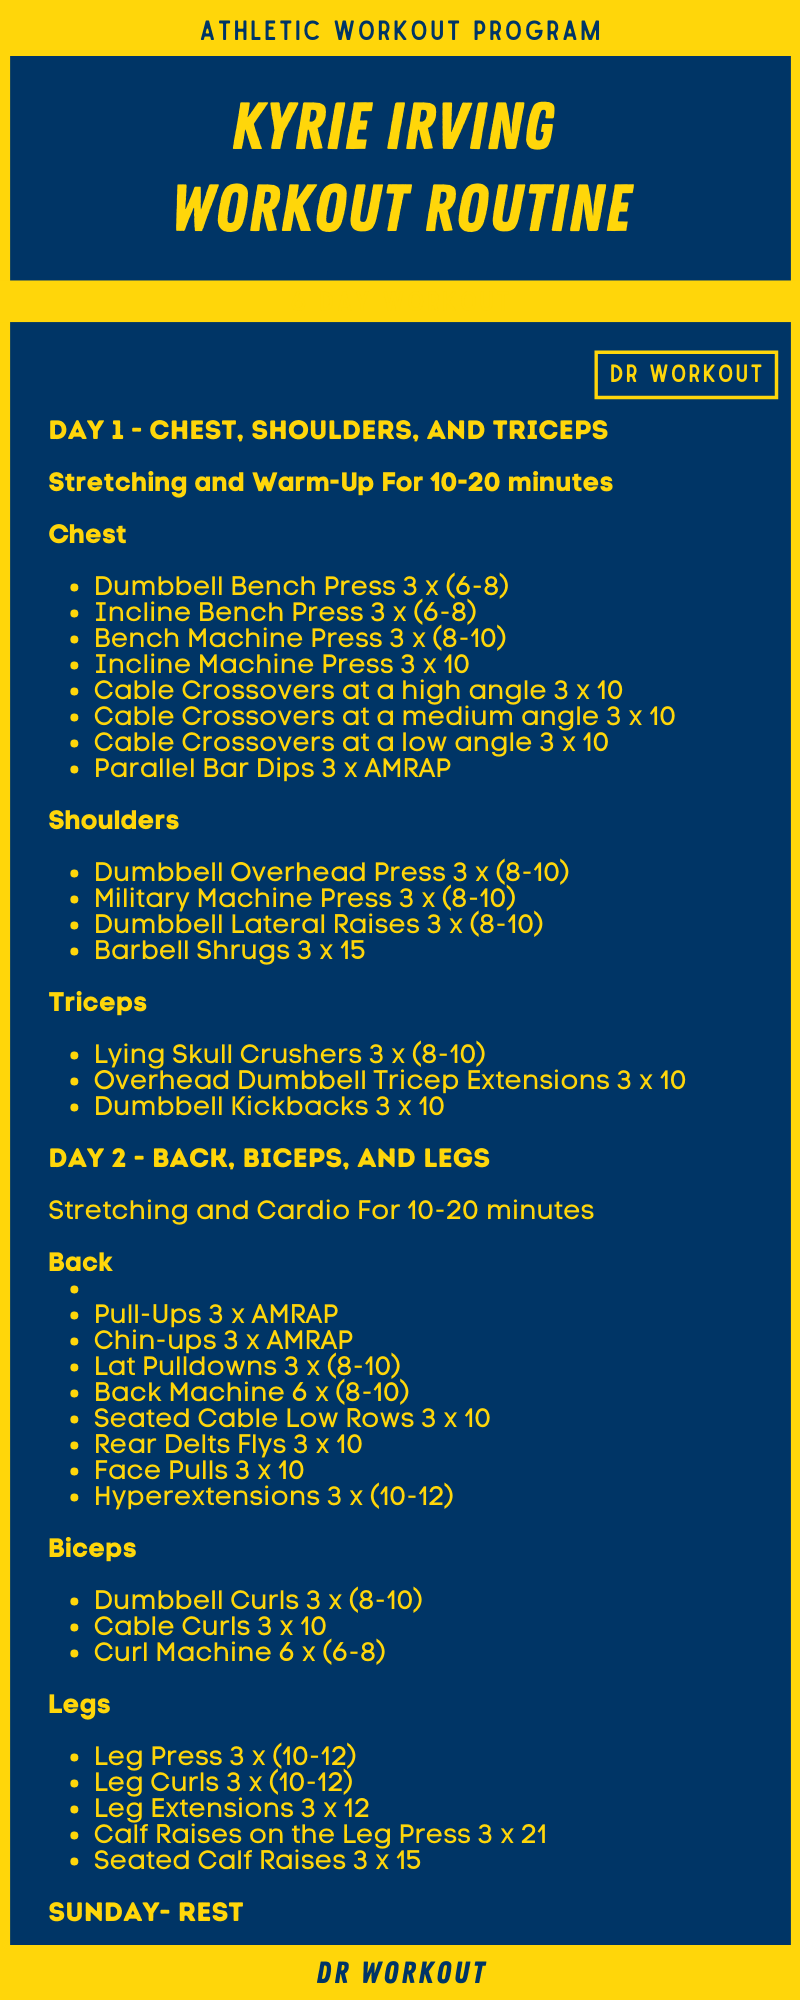 Kyrie Irving Workout Routine